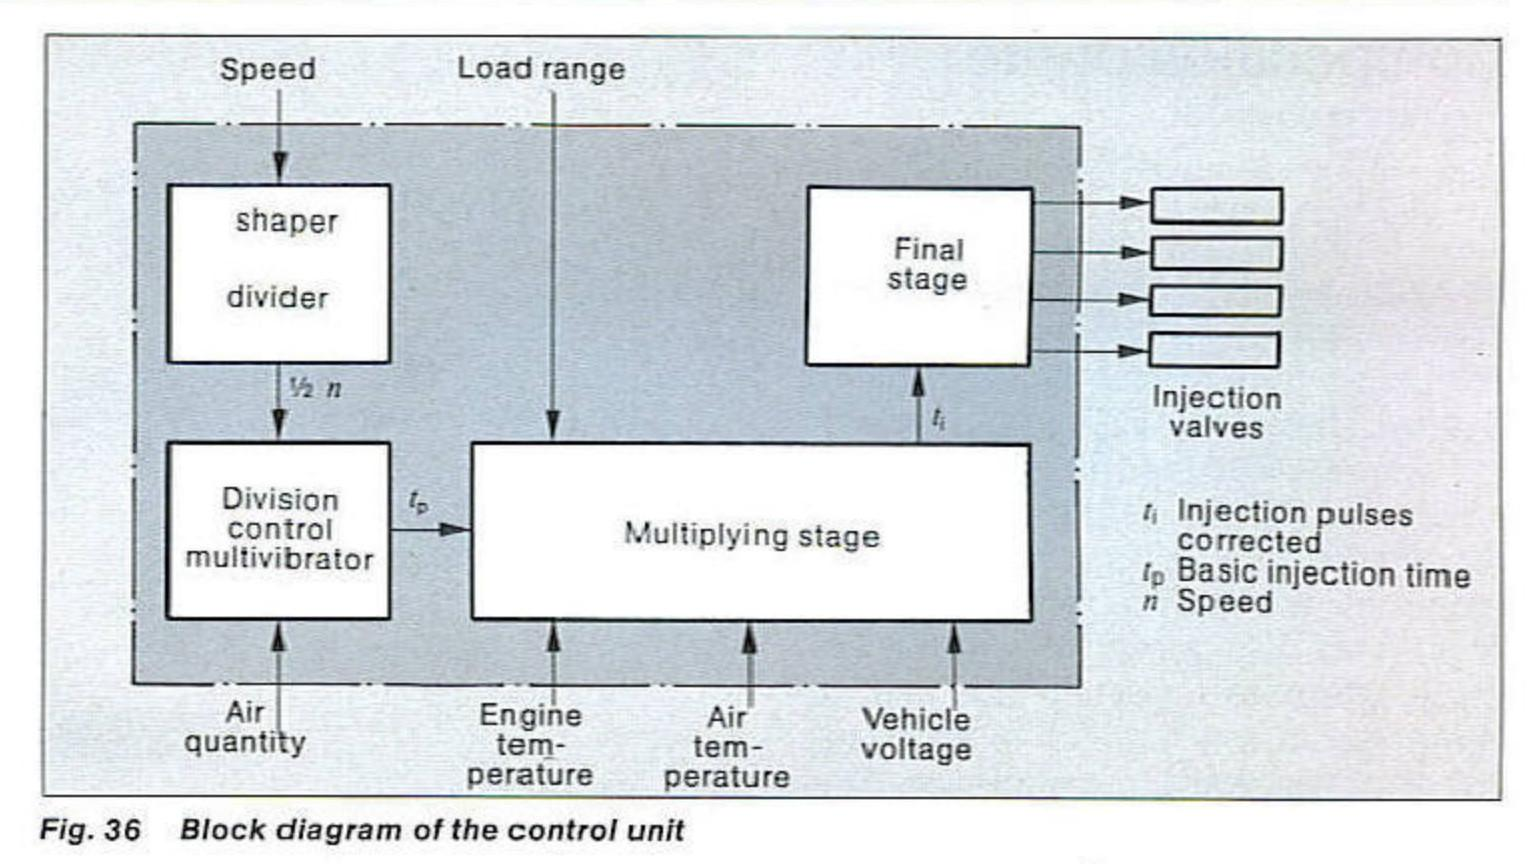 Ecu Block Diagram - Owner Manual & Wiring Diagram on chrysler dodge wiring diagram, kenworth wiring diagram, merkur wiring diagram, morris minor wiring diagram, scion xa wiring diagram, grumman llv wiring diagram, subaru wiring diagram, ghia wiring diagram, willys wiring diagram, jeep wiring diagram, pontiac vibe wiring diagram, mg wiring diagram, gmc truck wiring diagram, nissan wiring diagram, suzuki xl7 wiring diagram, hummer wiring diagram, avanti wiring diagram, saturn vue wiring diagram,